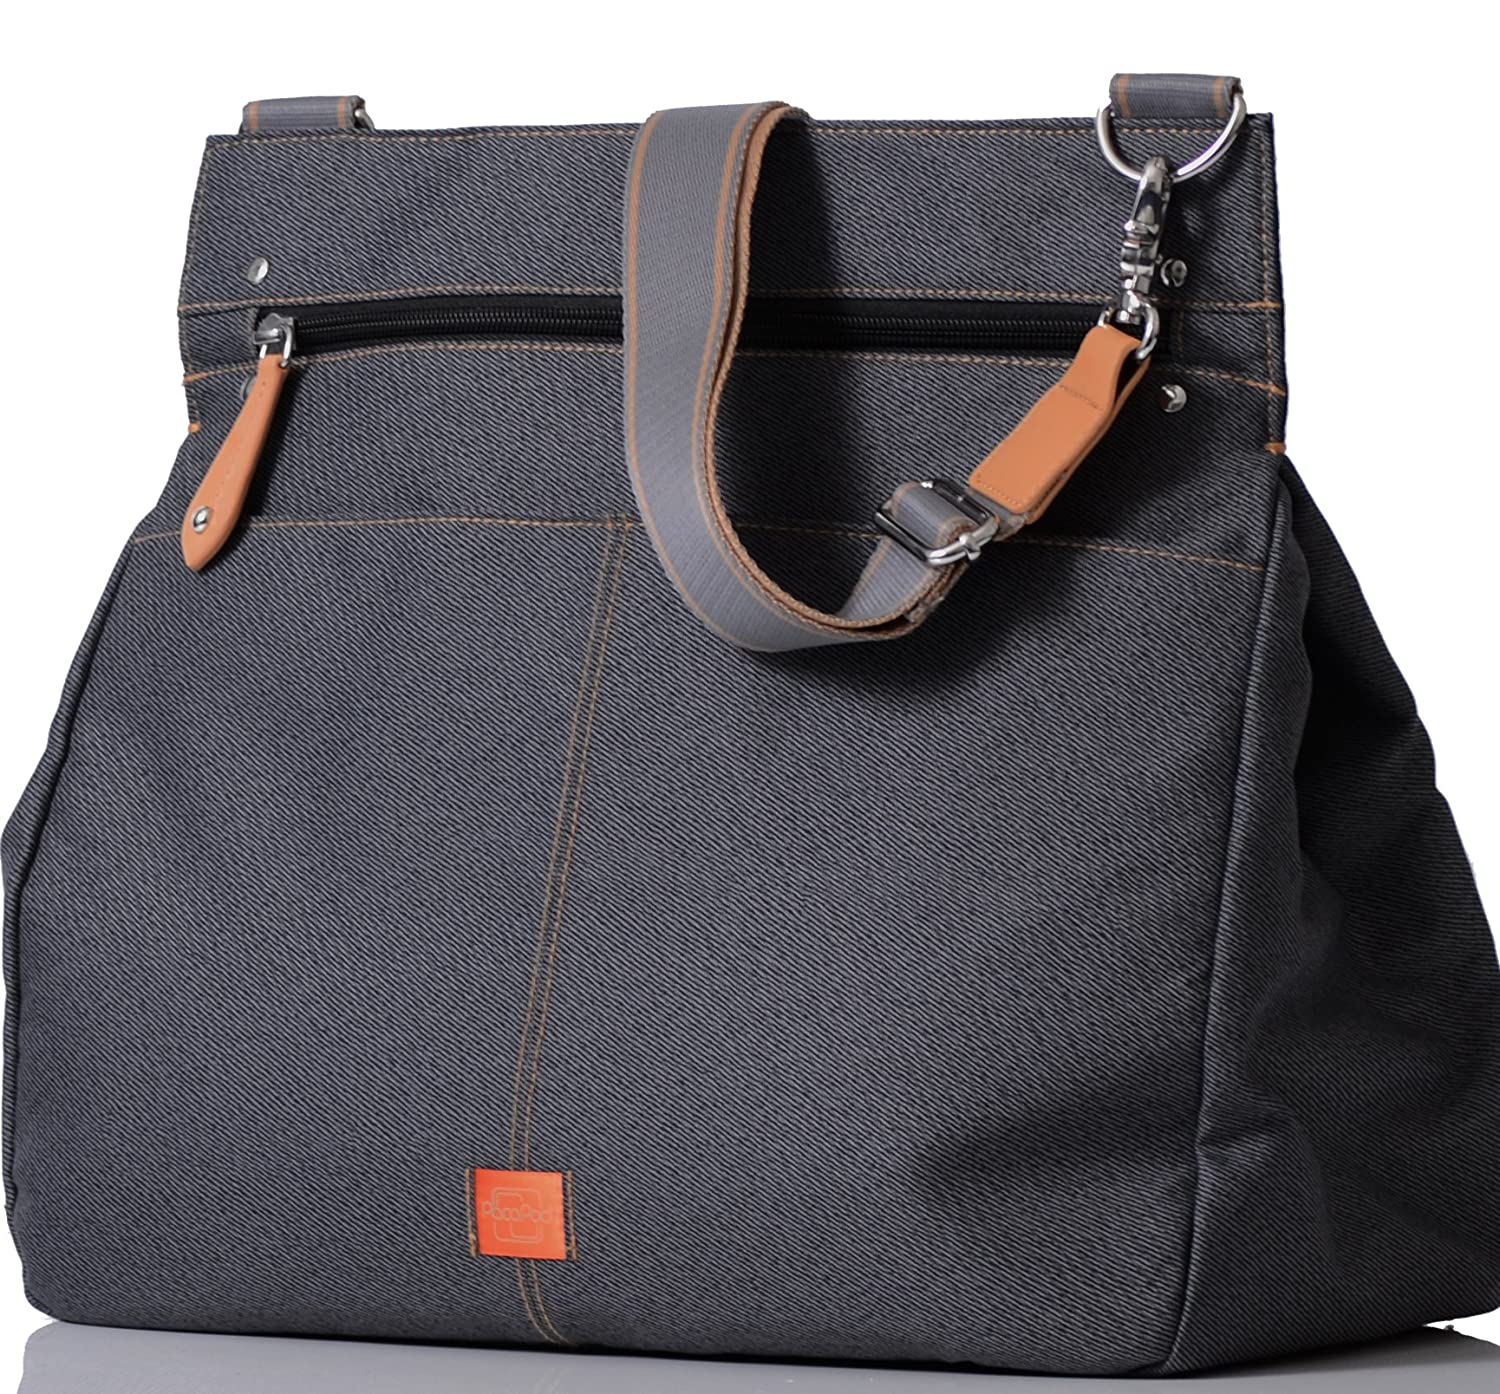 PacaPod Oban Black Charcoal Designer Baby Changing Bag - Luxury Black Messenger 3 in 1 Organising System with Convertible Backpack Straps